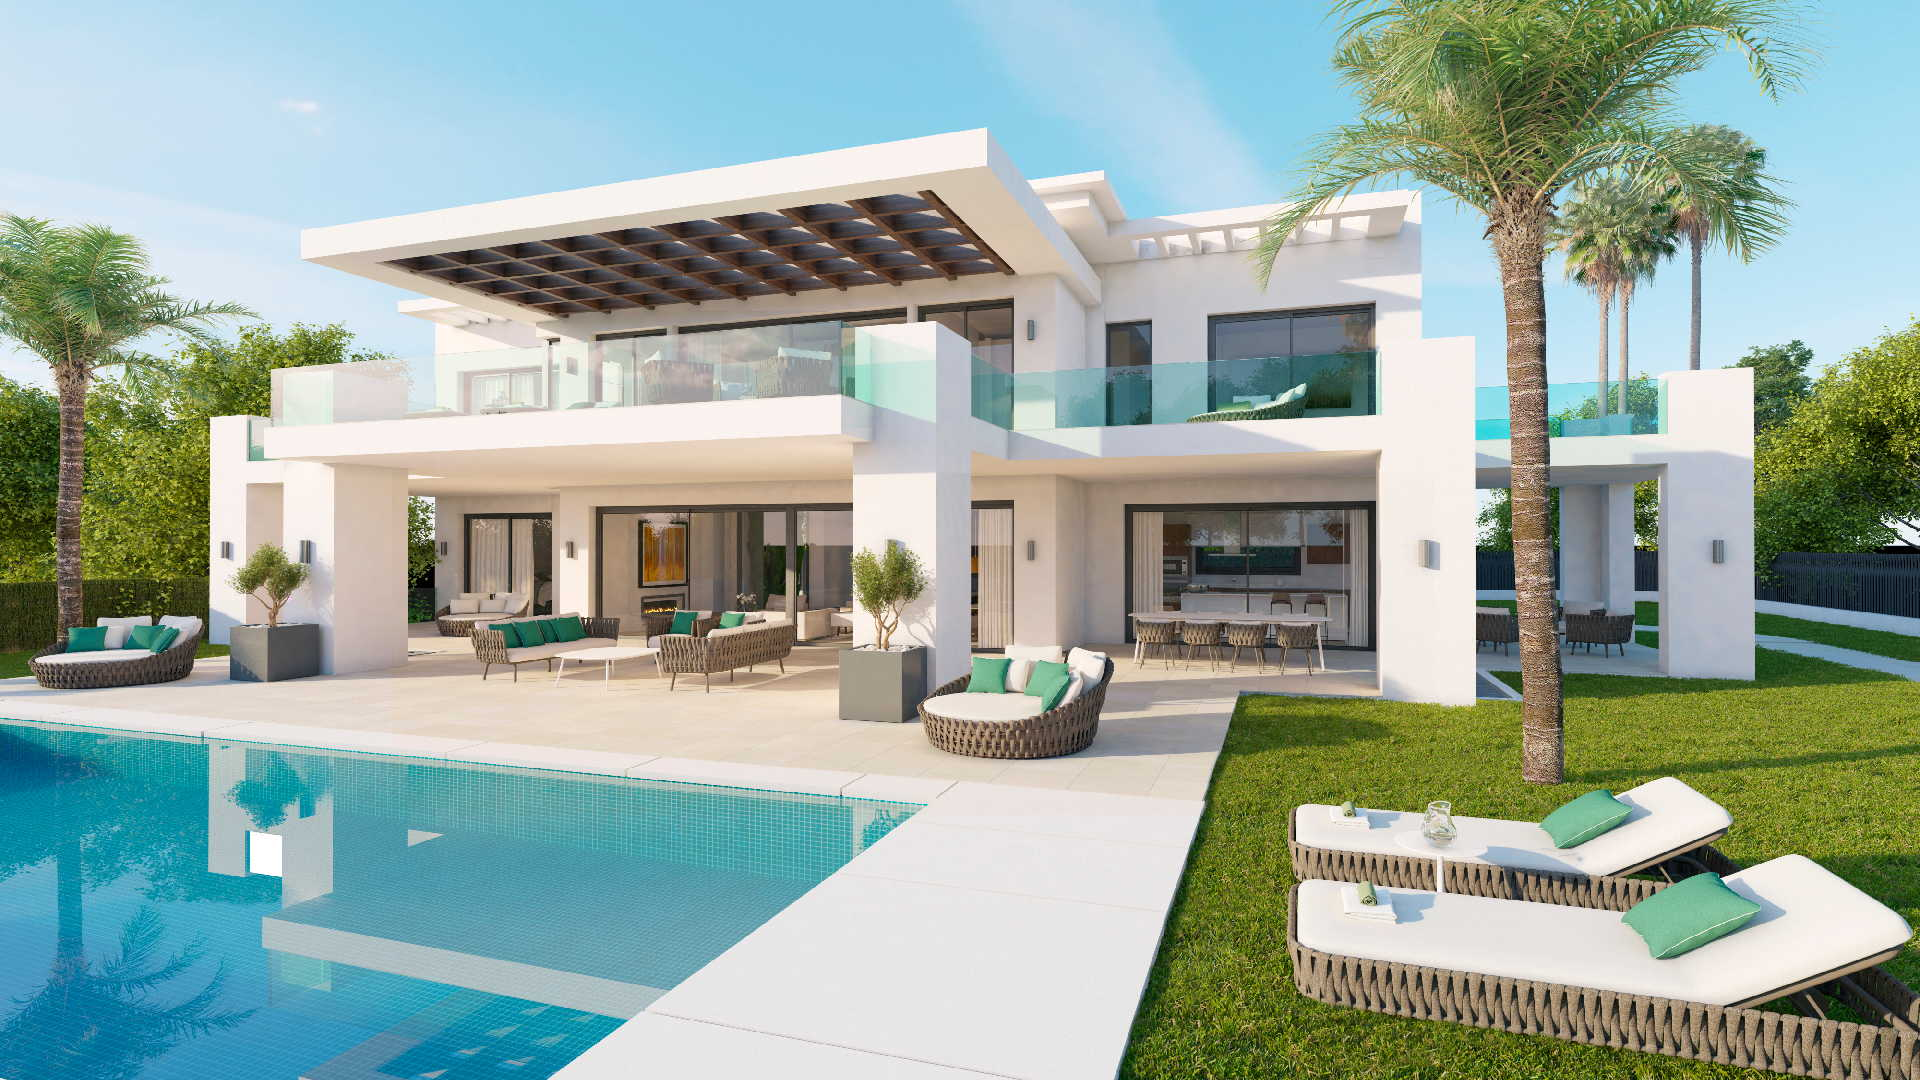 New villa in los olivos nueva andalucia marbella realista for Plans de villa